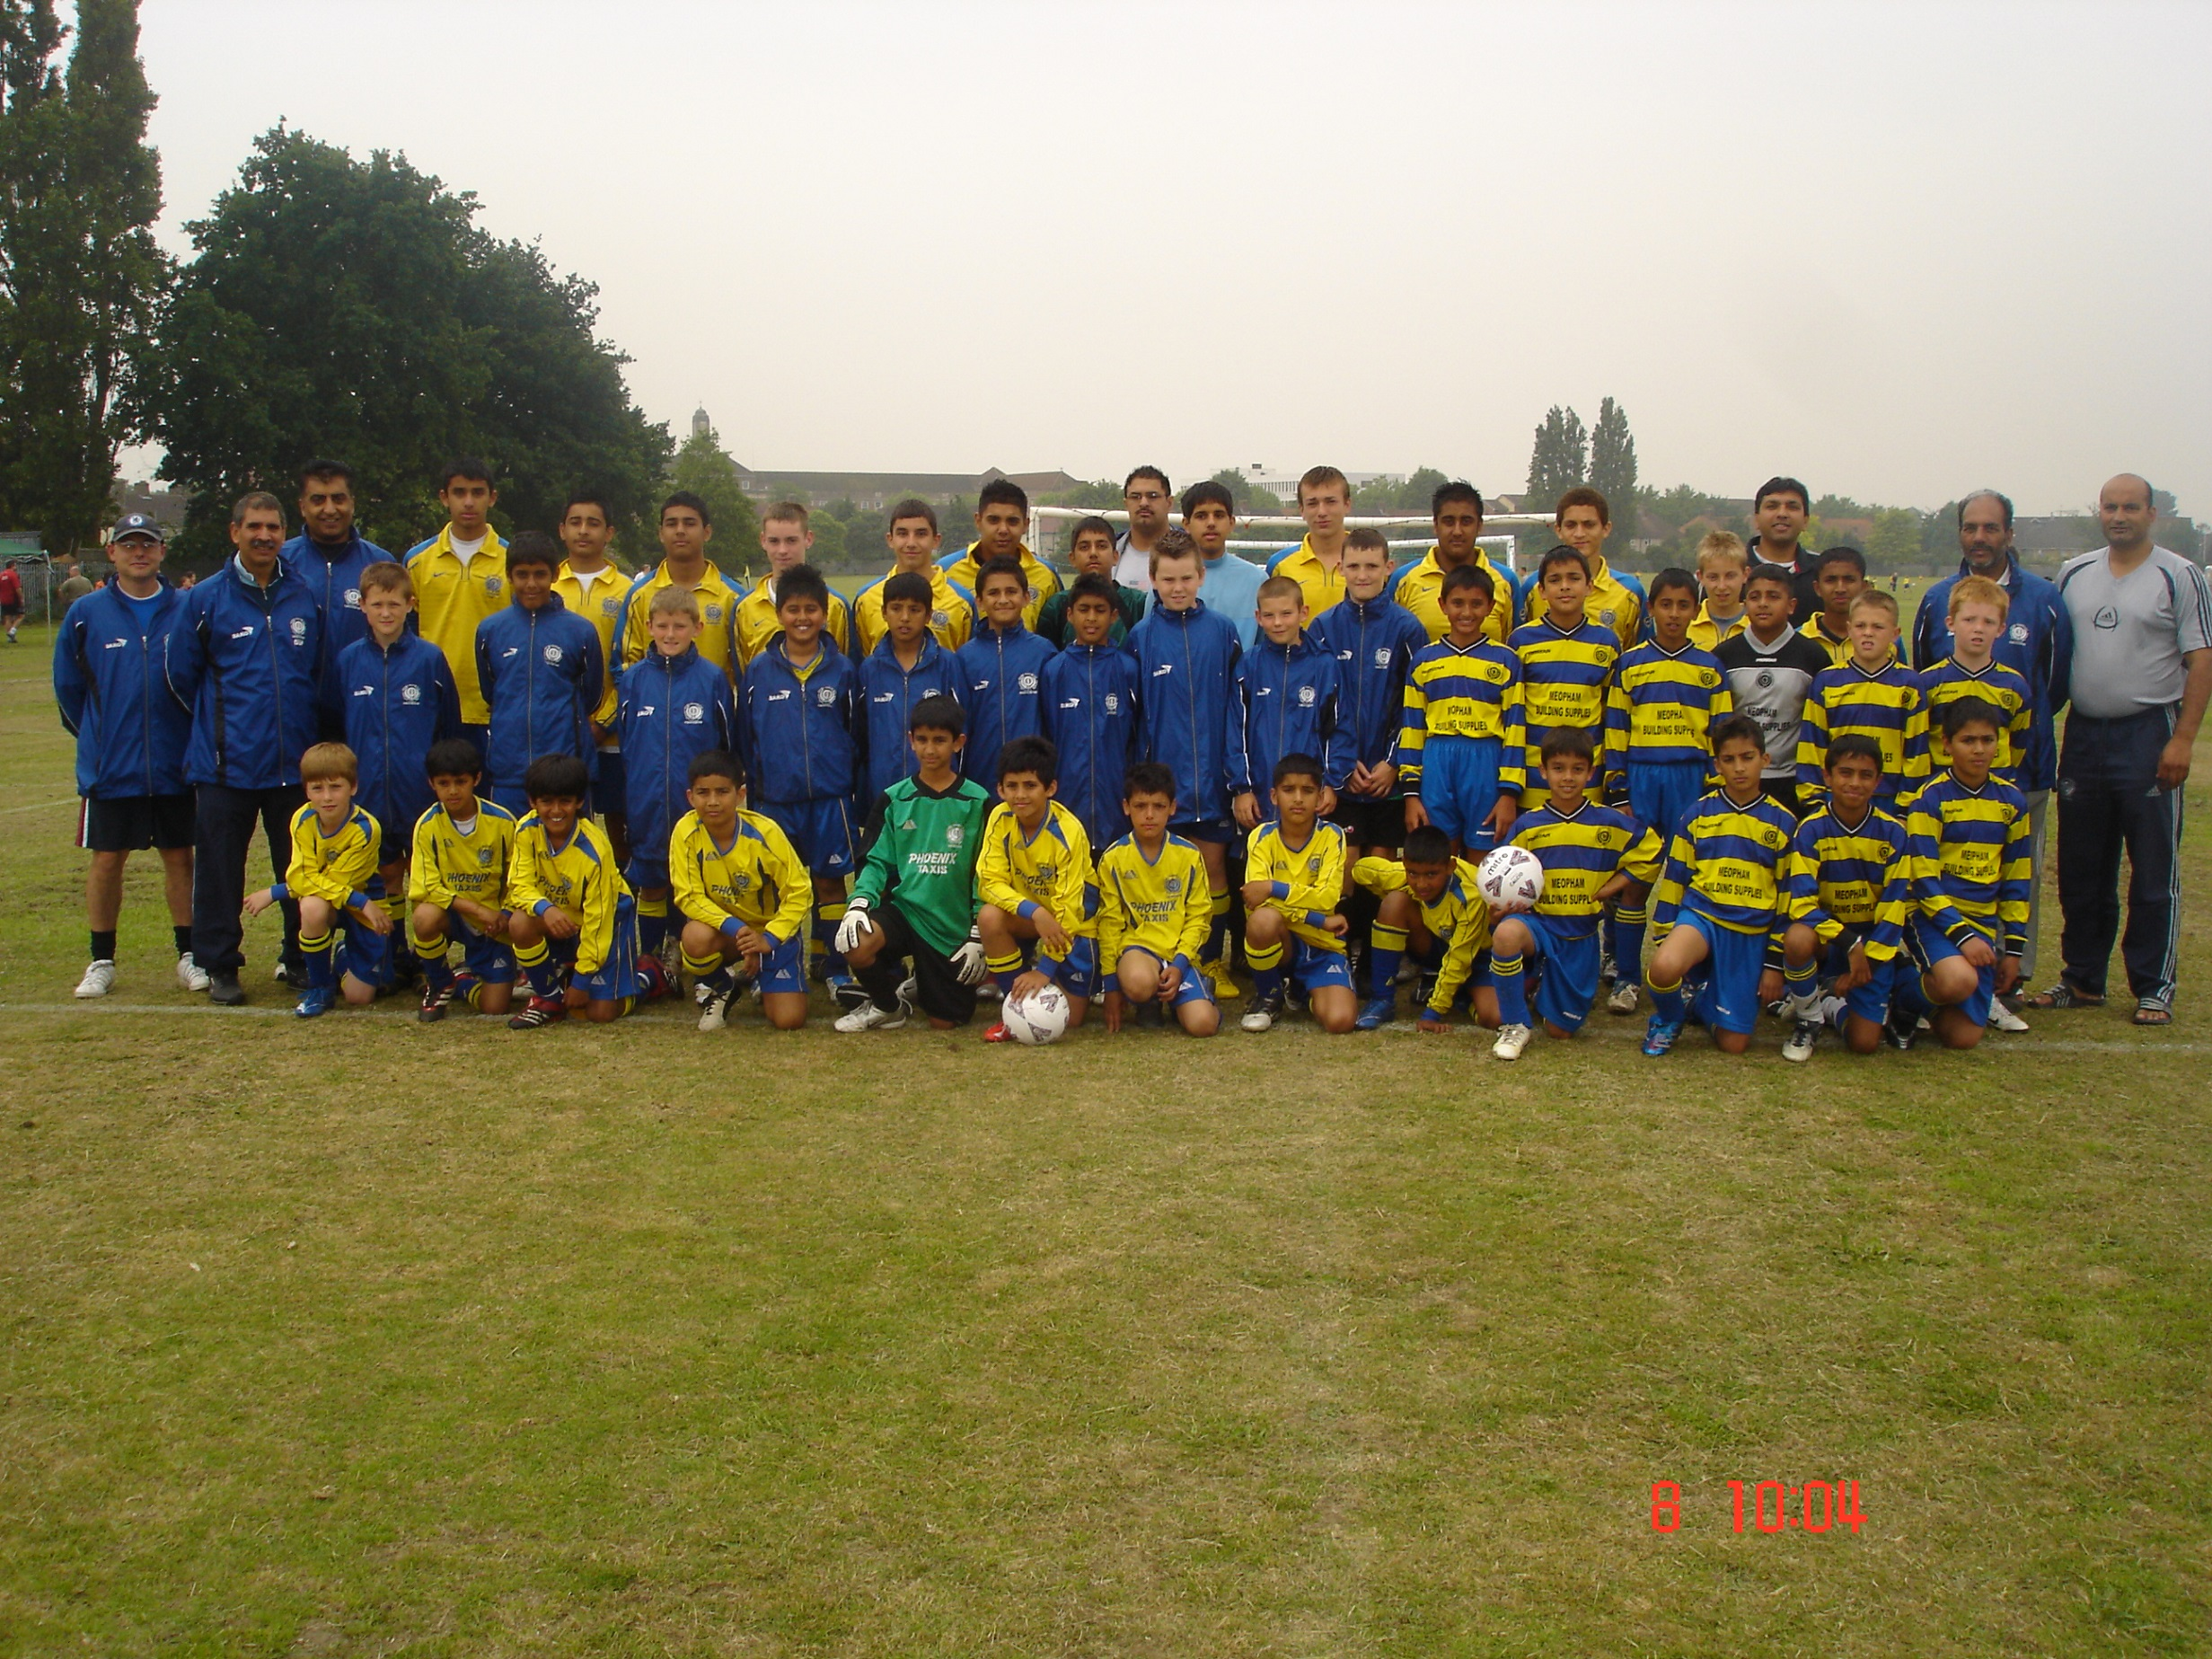 The Youth Teams at Barking 2007